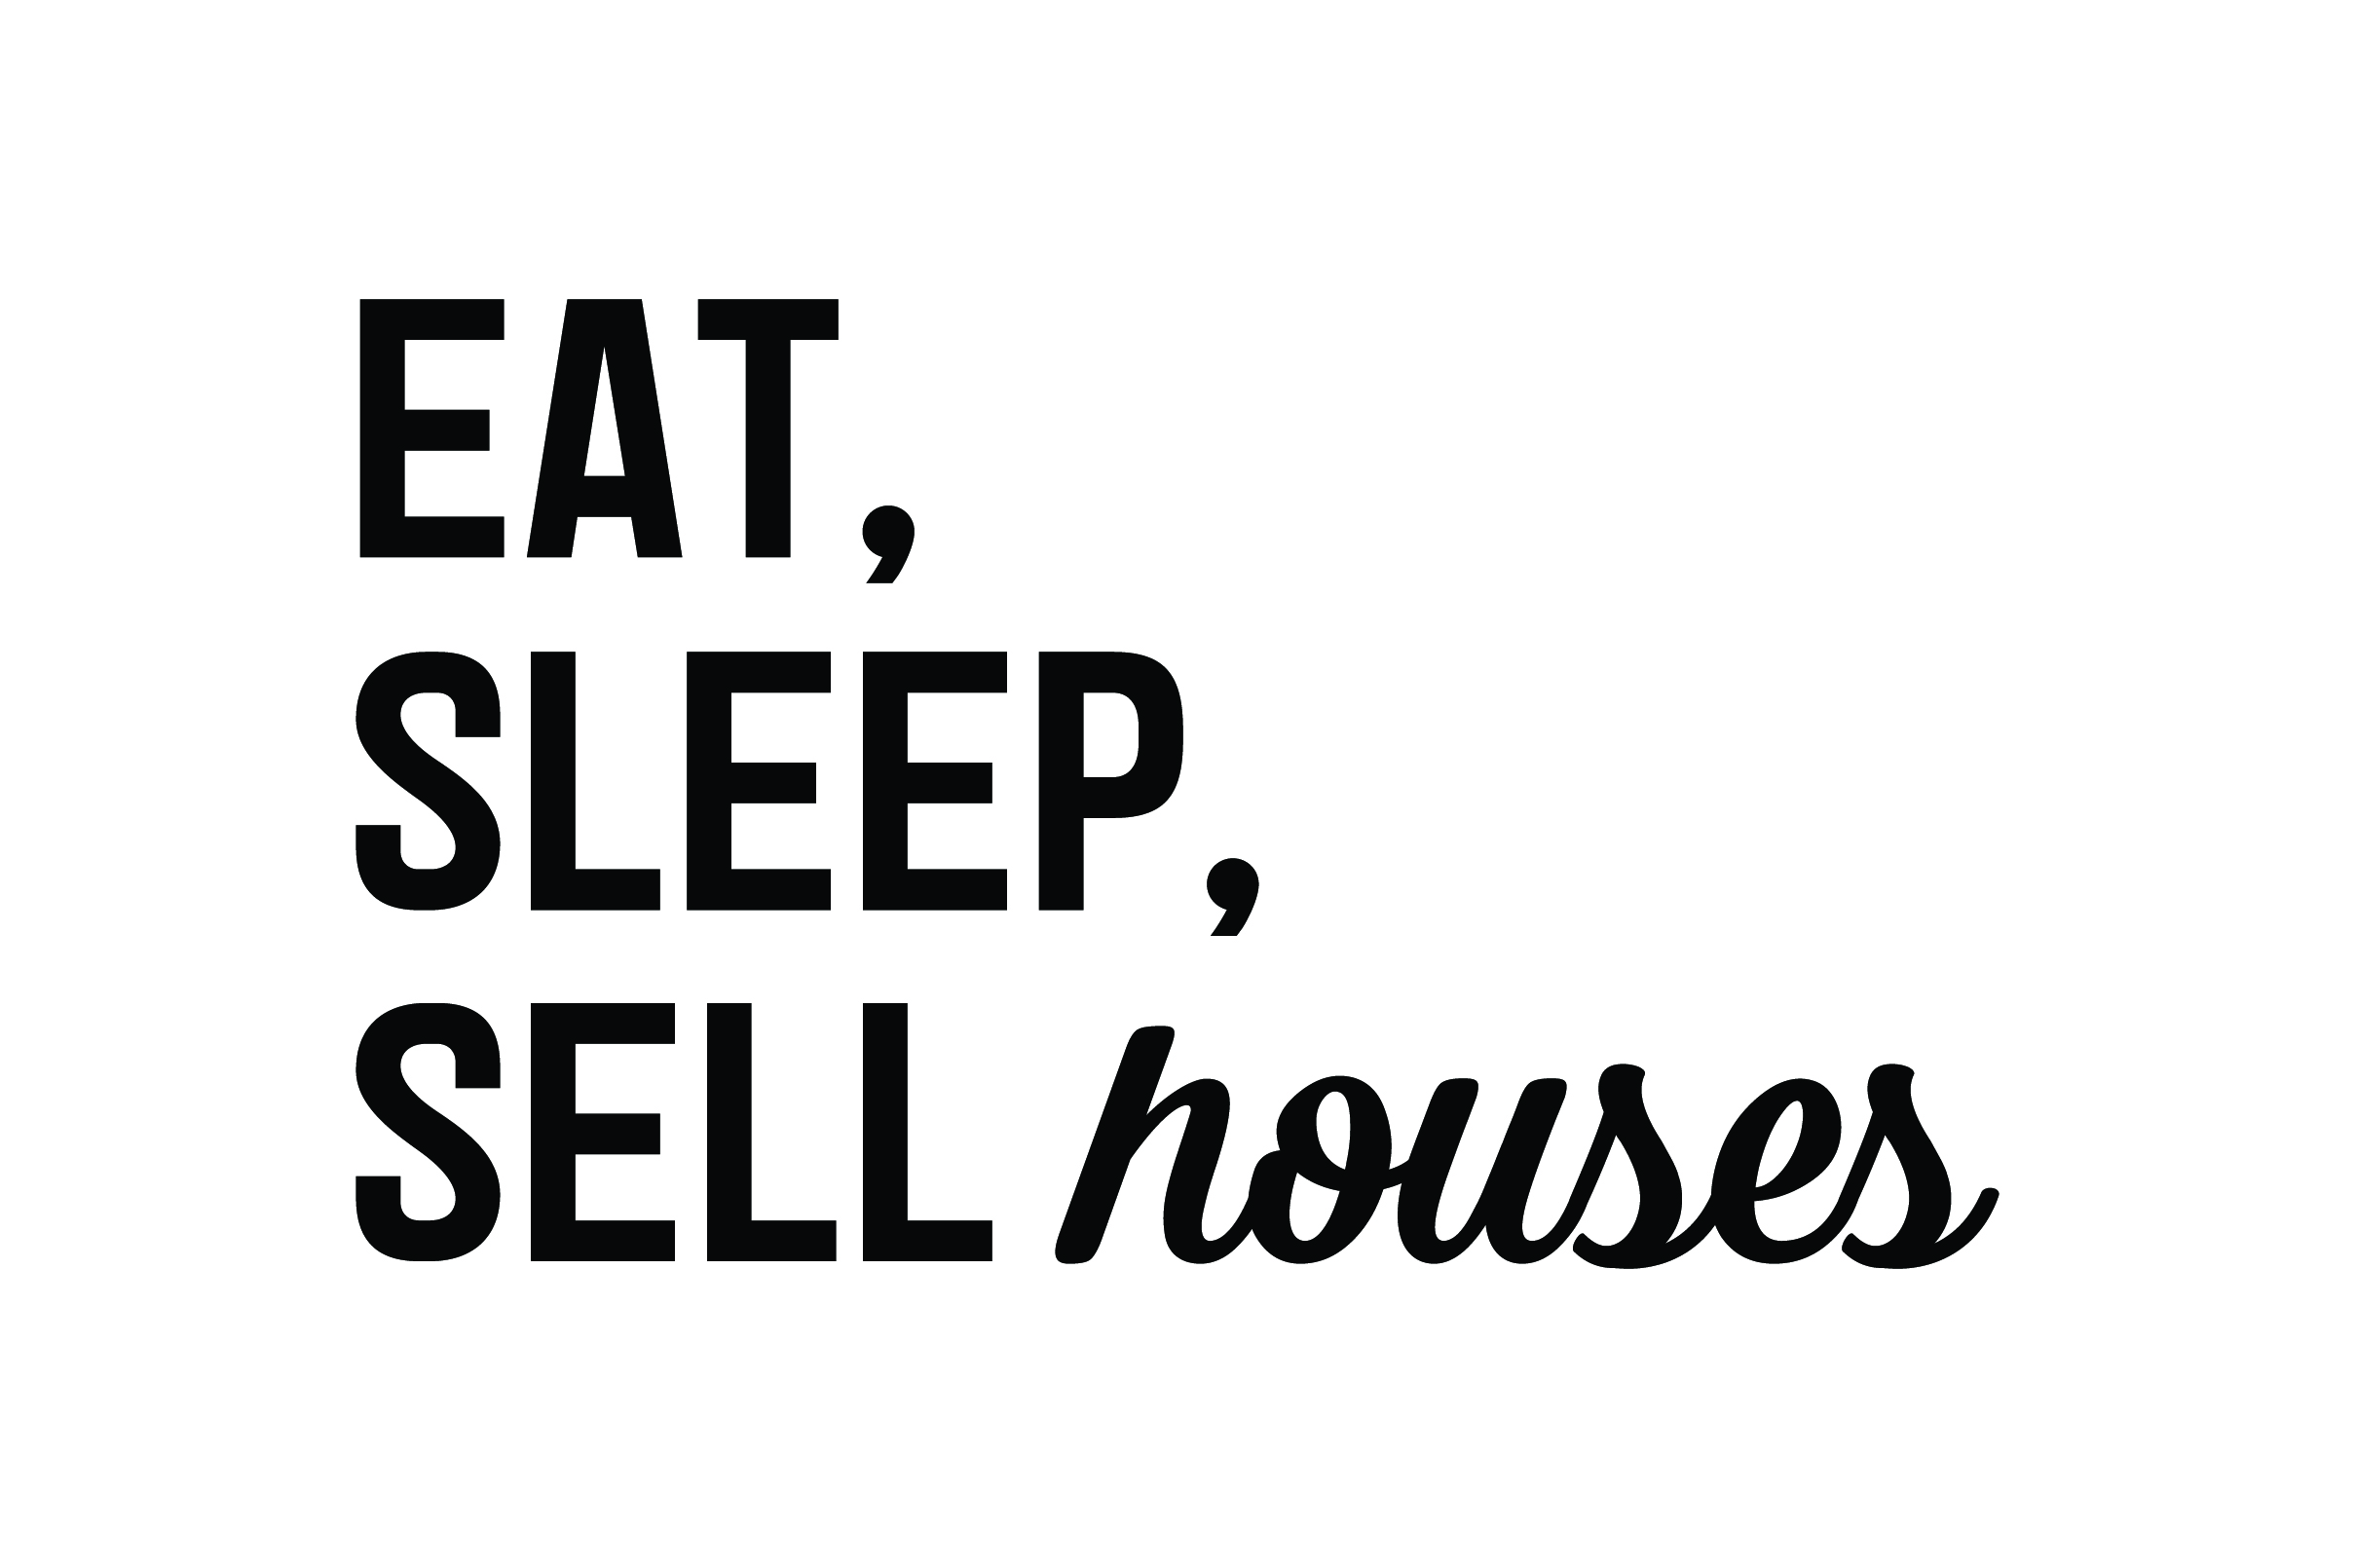 Download Free East Sleep Sell Houses Svg Cut File By Creative Fabrica Crafts for Cricut Explore, Silhouette and other cutting machines.